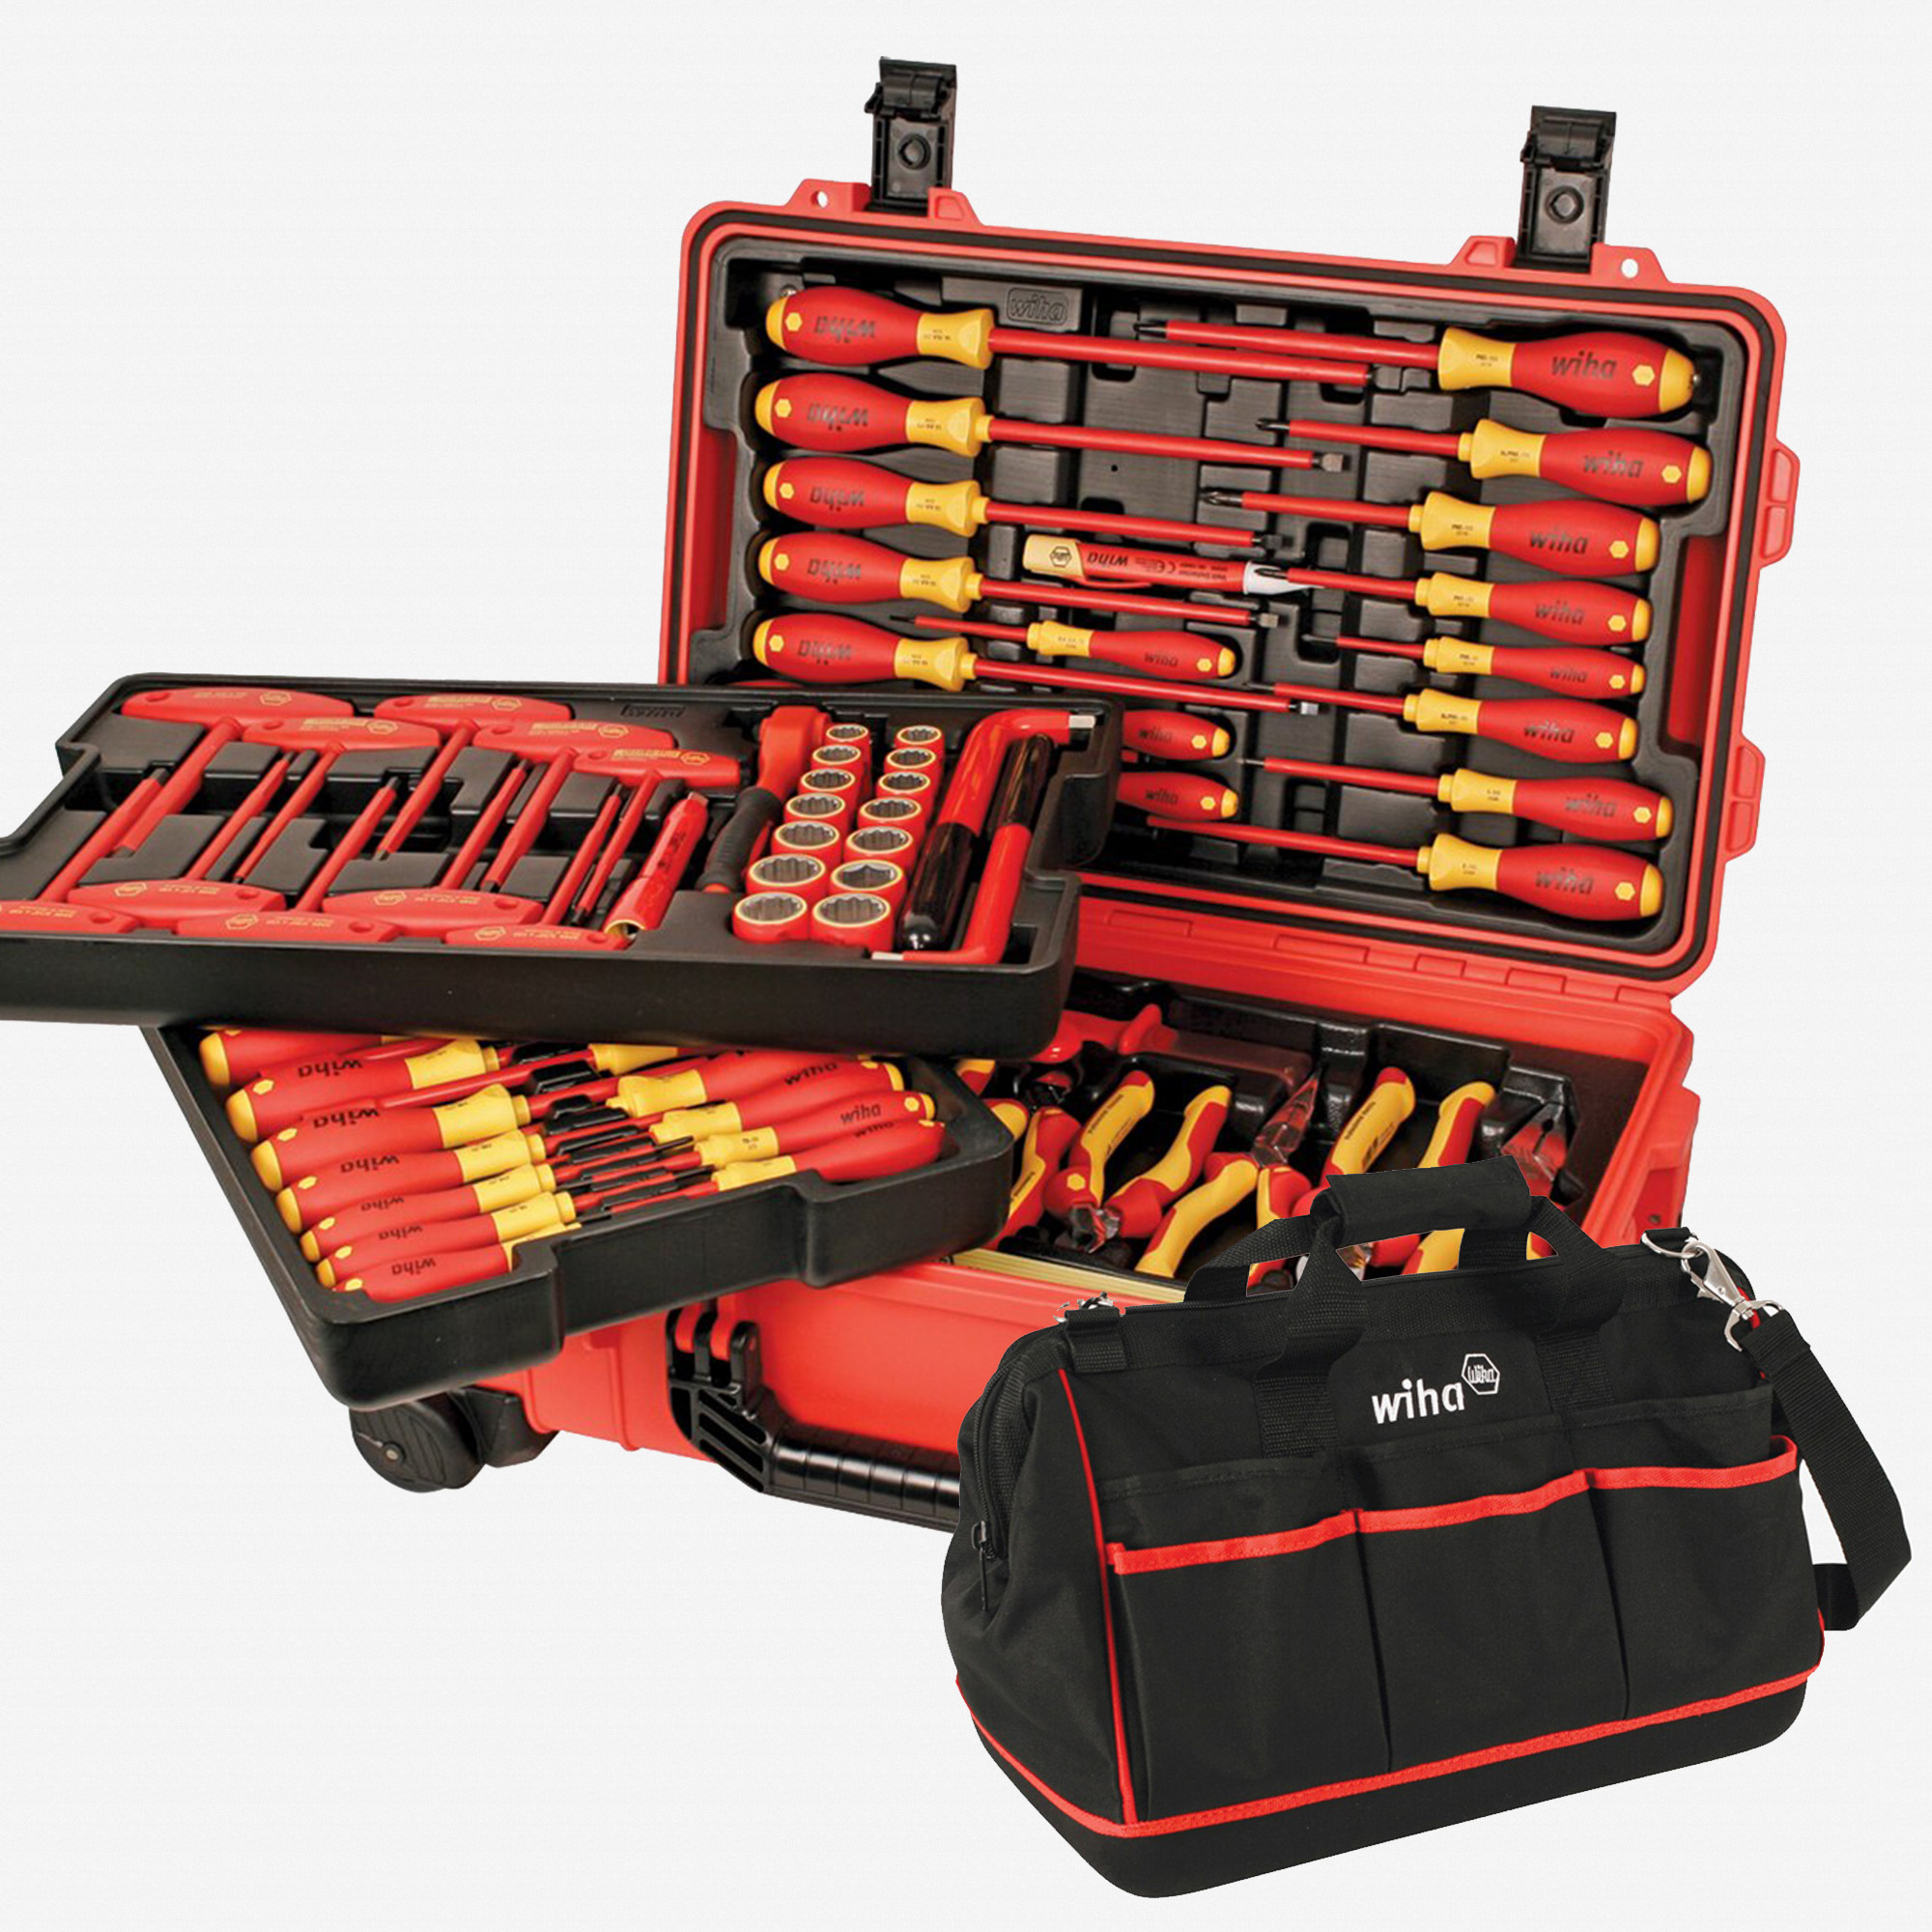 Wiha 32800 Master Insulated Rolling Tool Case Set, 80 Pieces